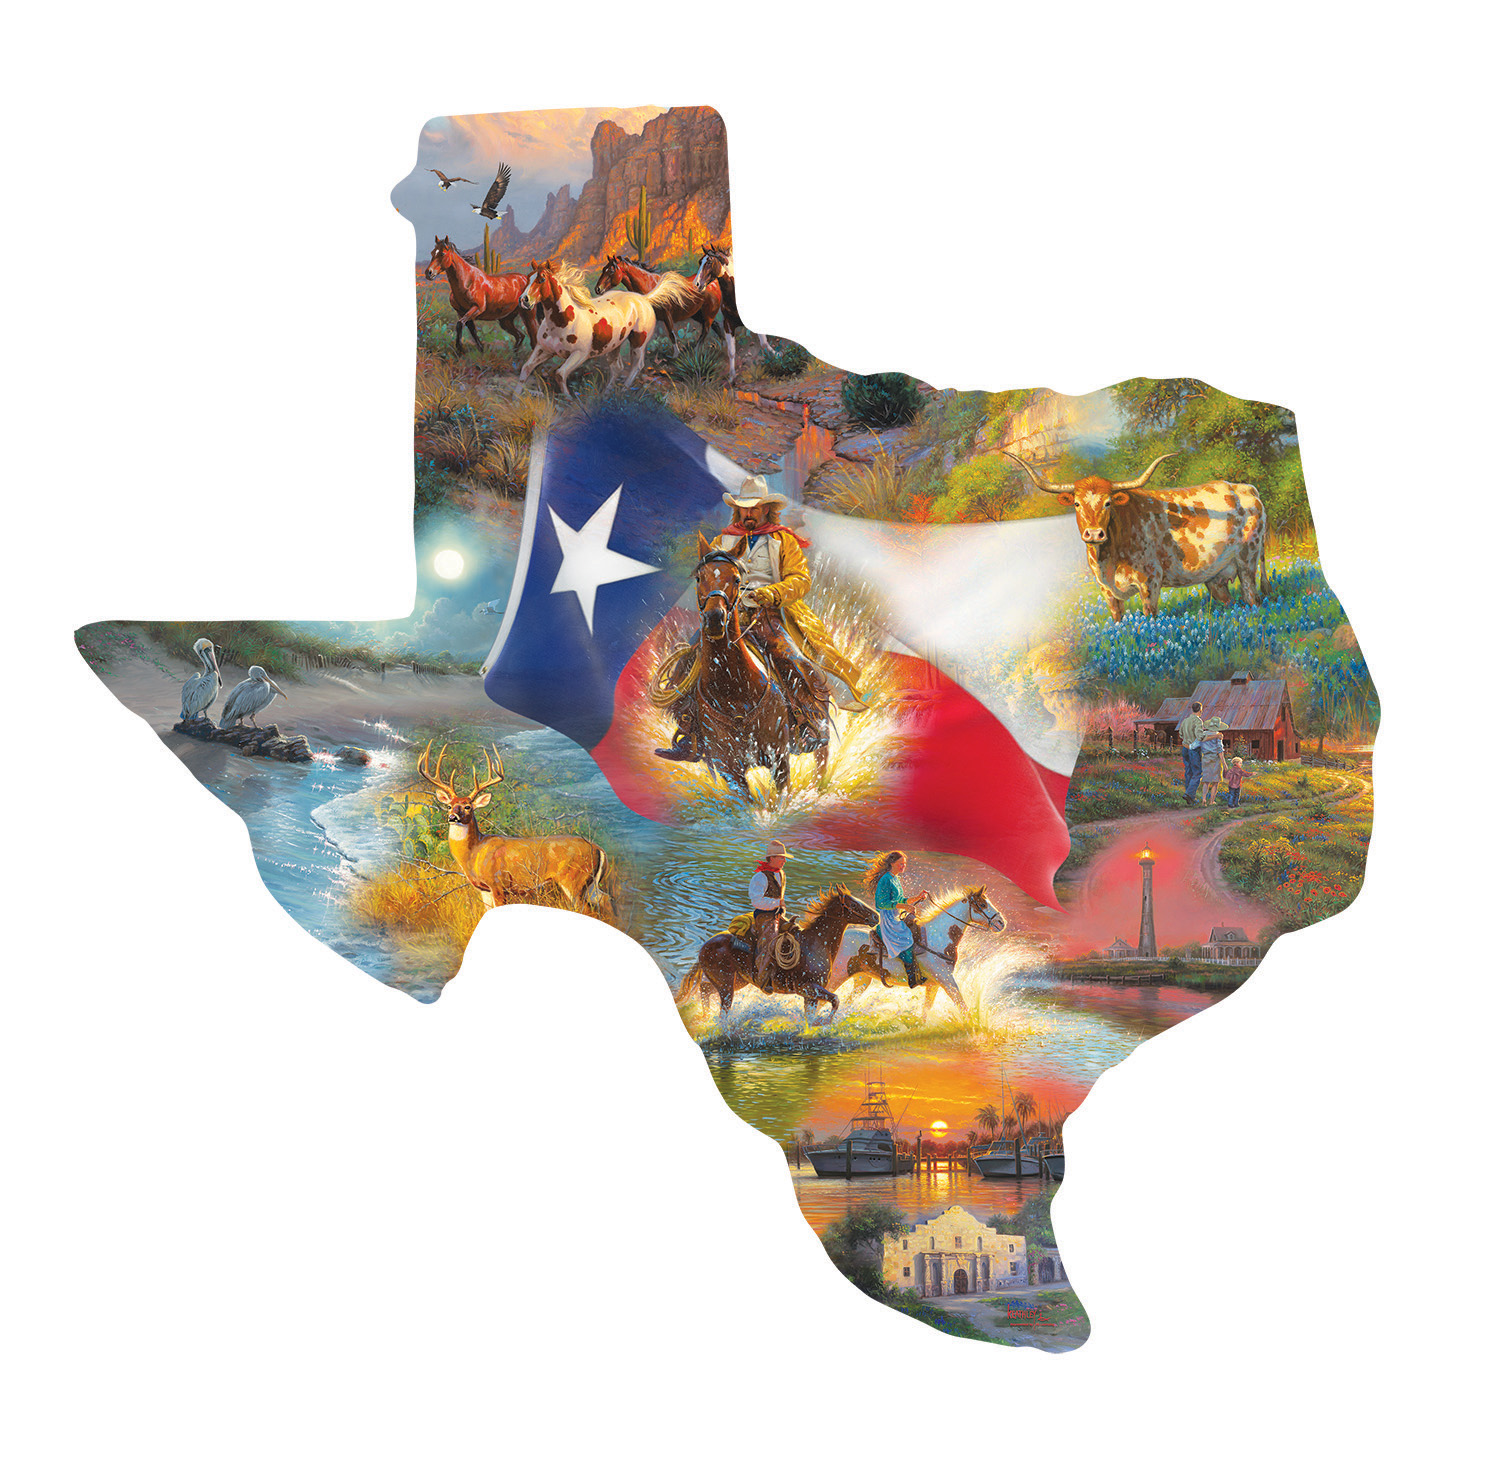 pieces-xxl-mark-keathley-images-of-texas